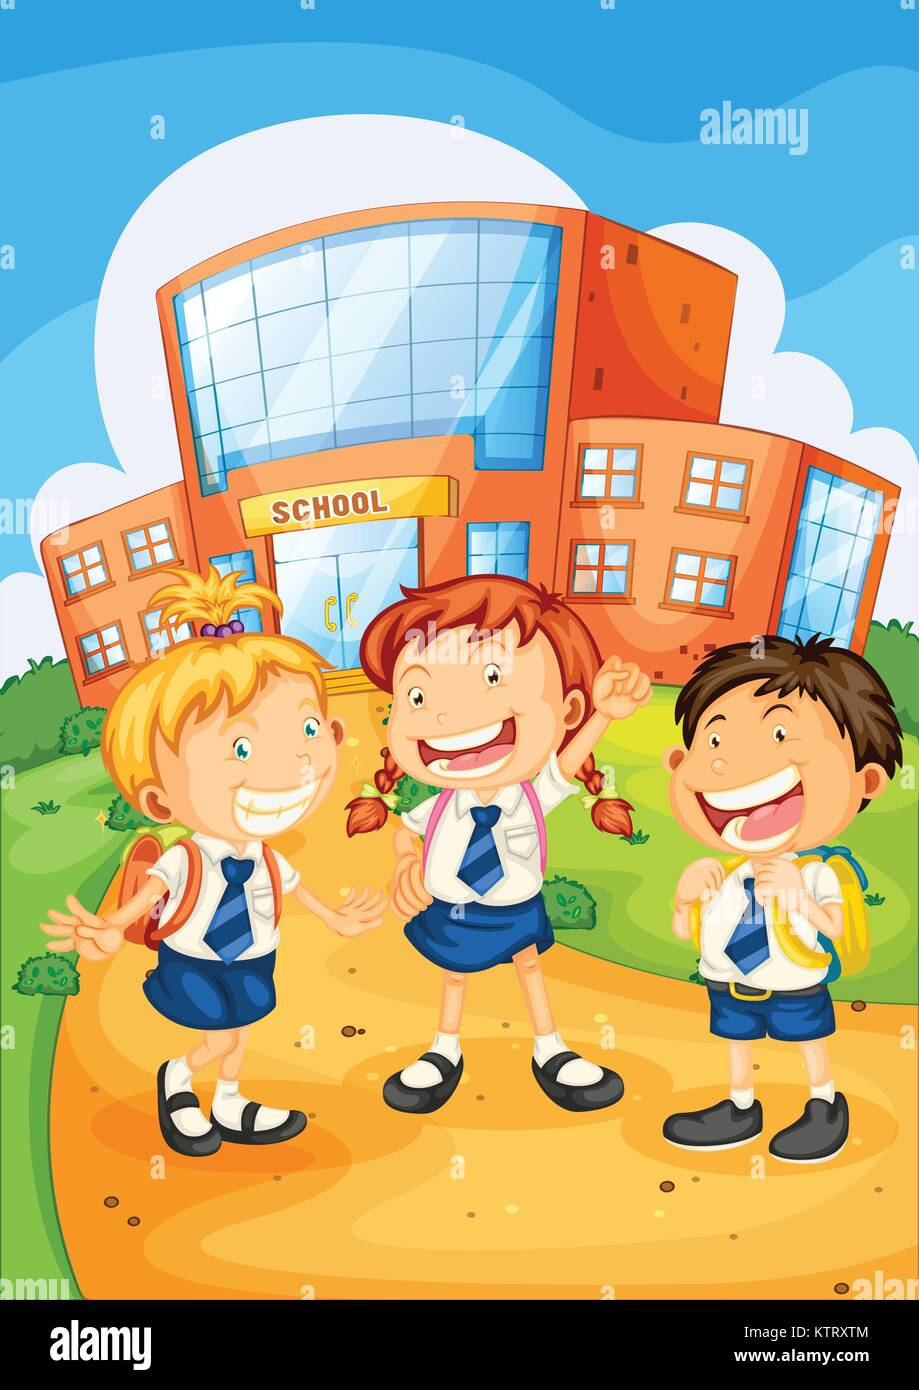 illustration of a kids infront of school building - Stock Vector